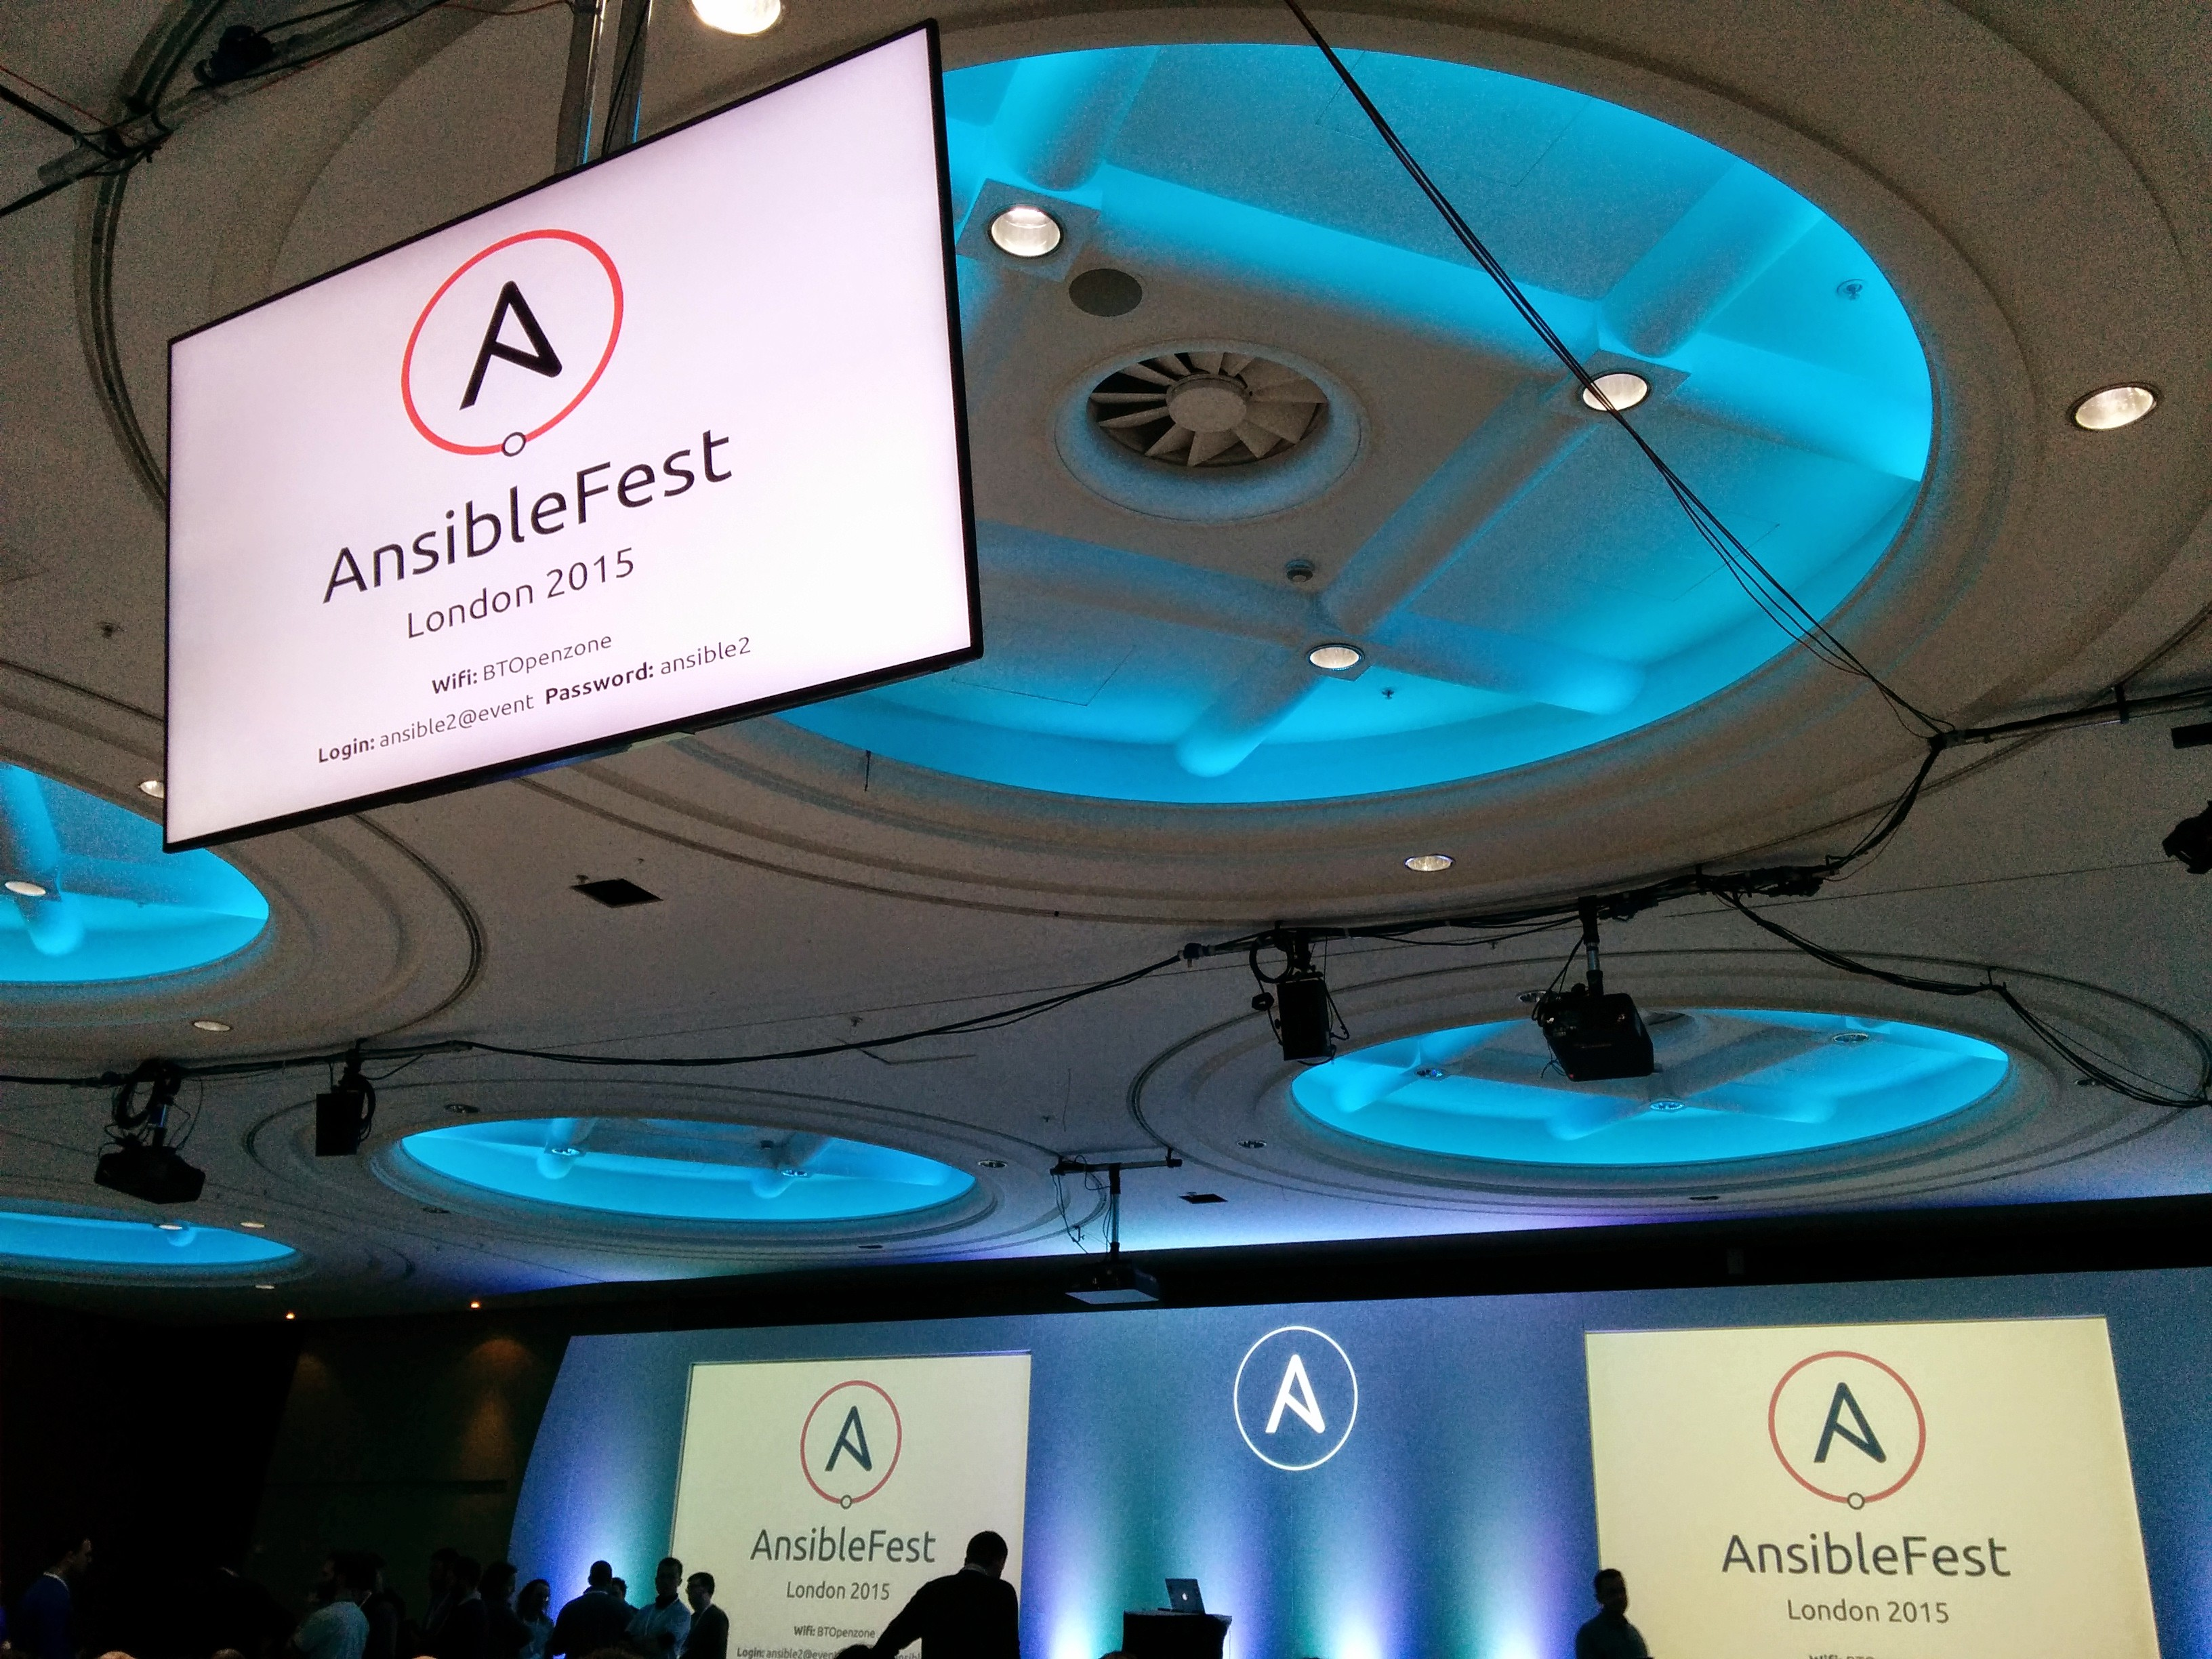 AnsibleFest 2015 in London